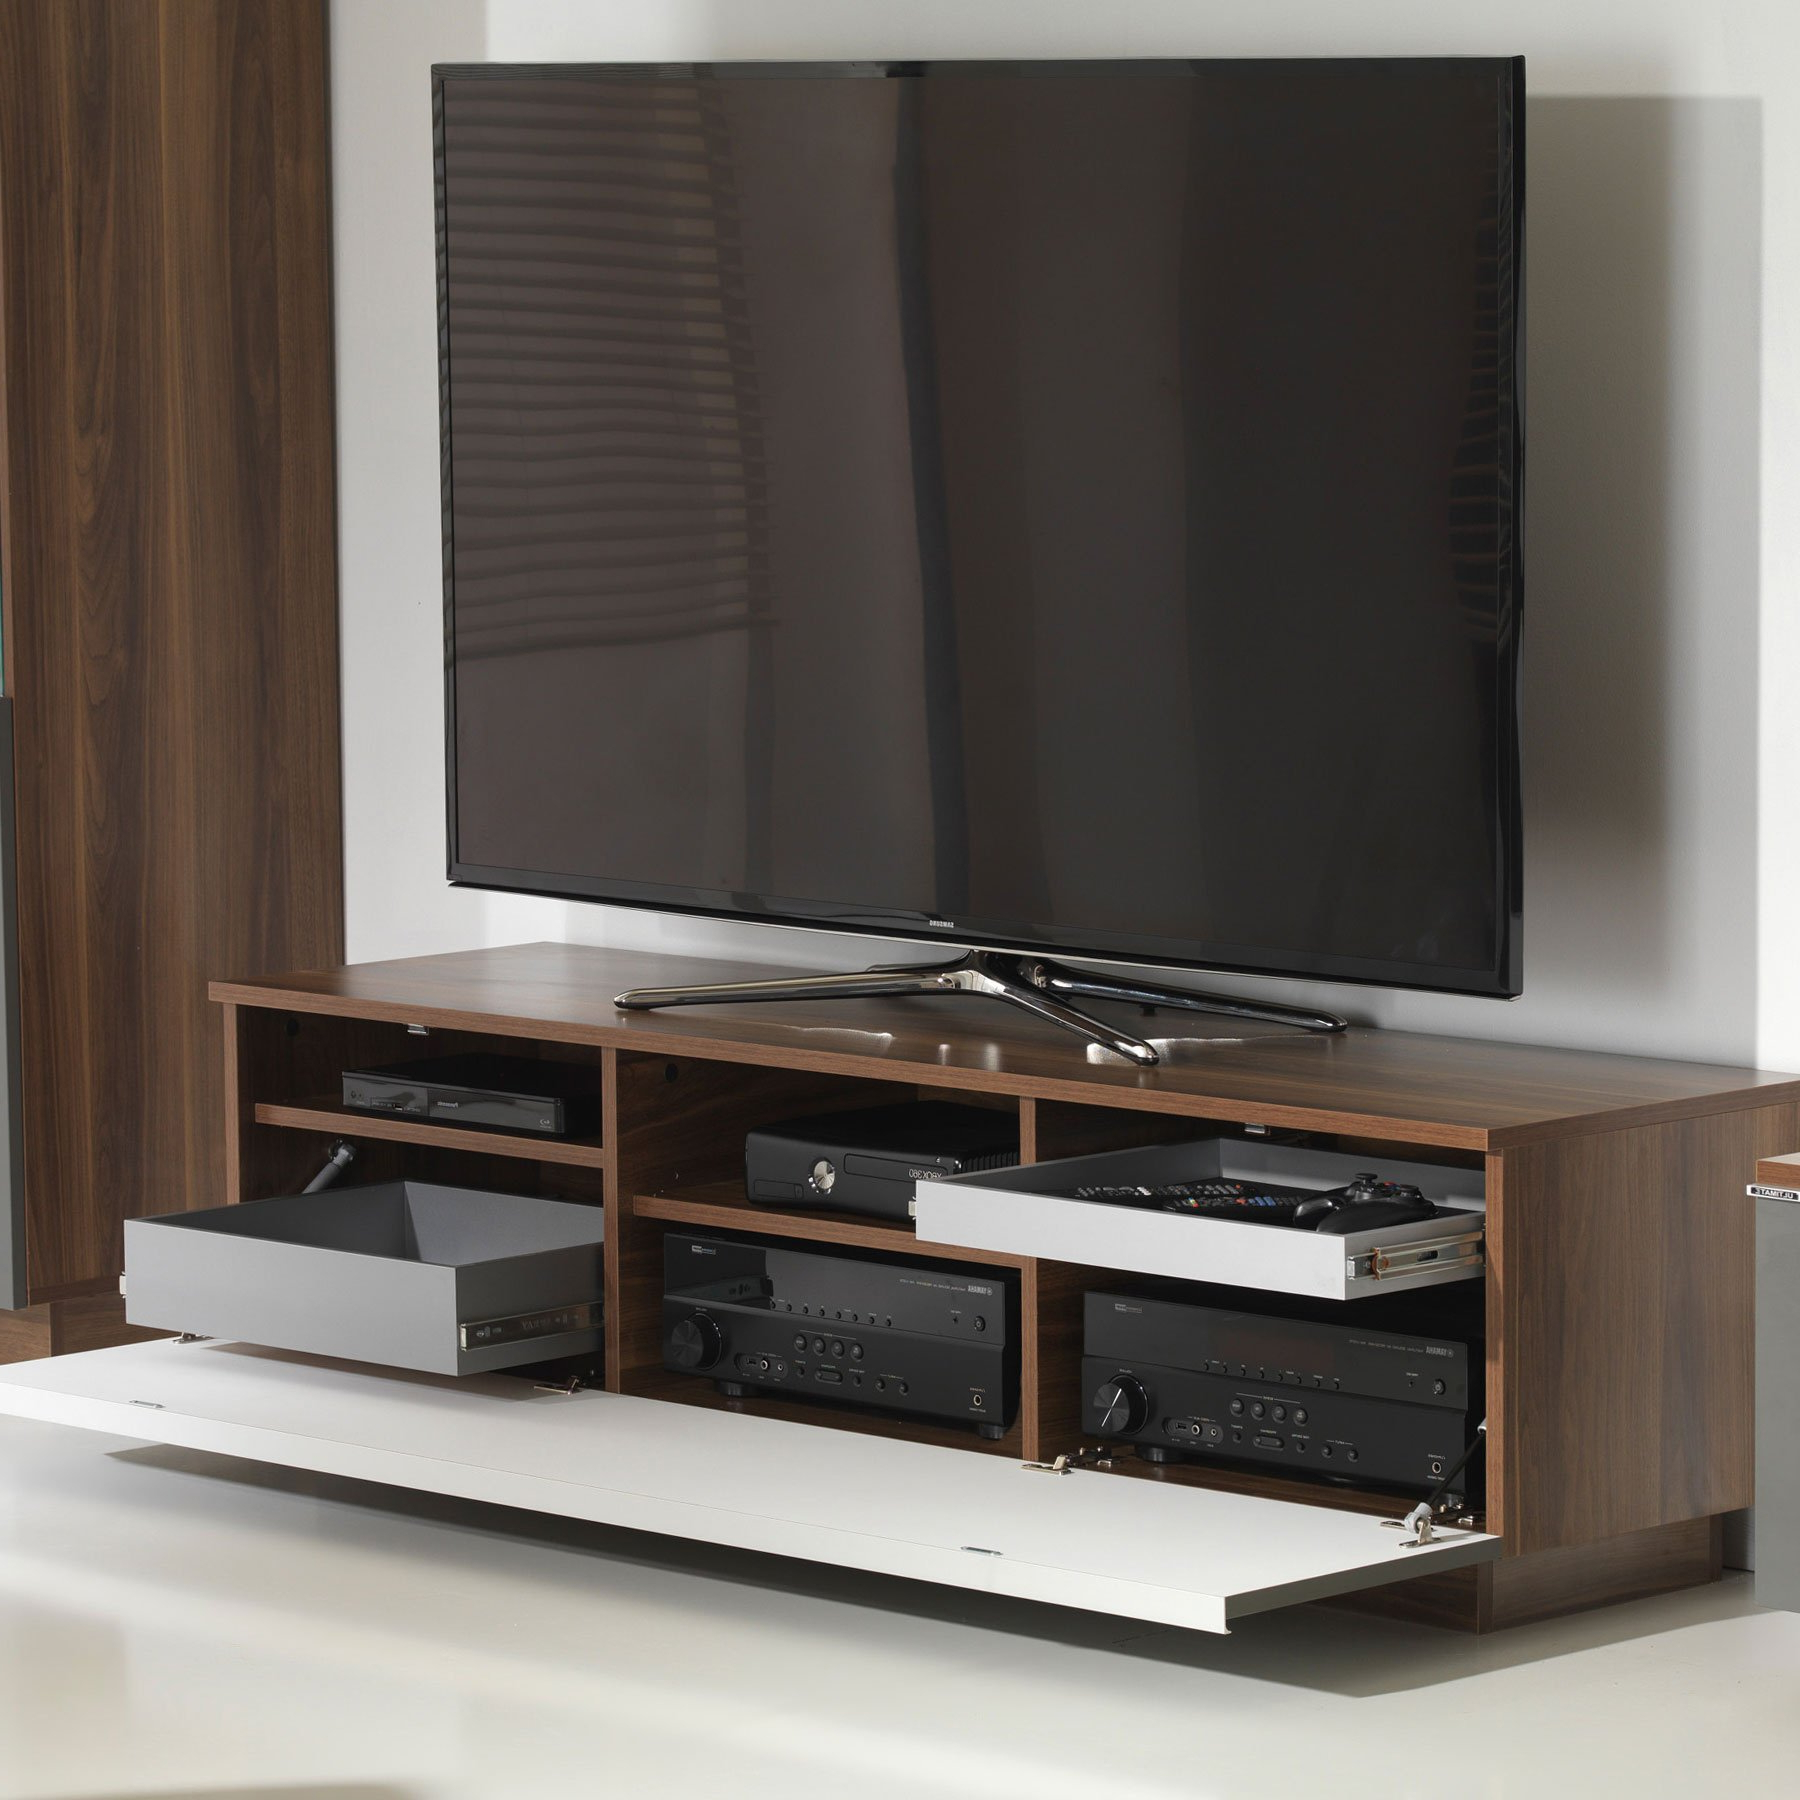 """Uk Cf Fusion 160cm Walnut And Grey Tv Stand For Up To 70"""" Tvs With Newest Lorraine Tv Stands For Tvs Up To 70"""" (View 10 of 20)"""